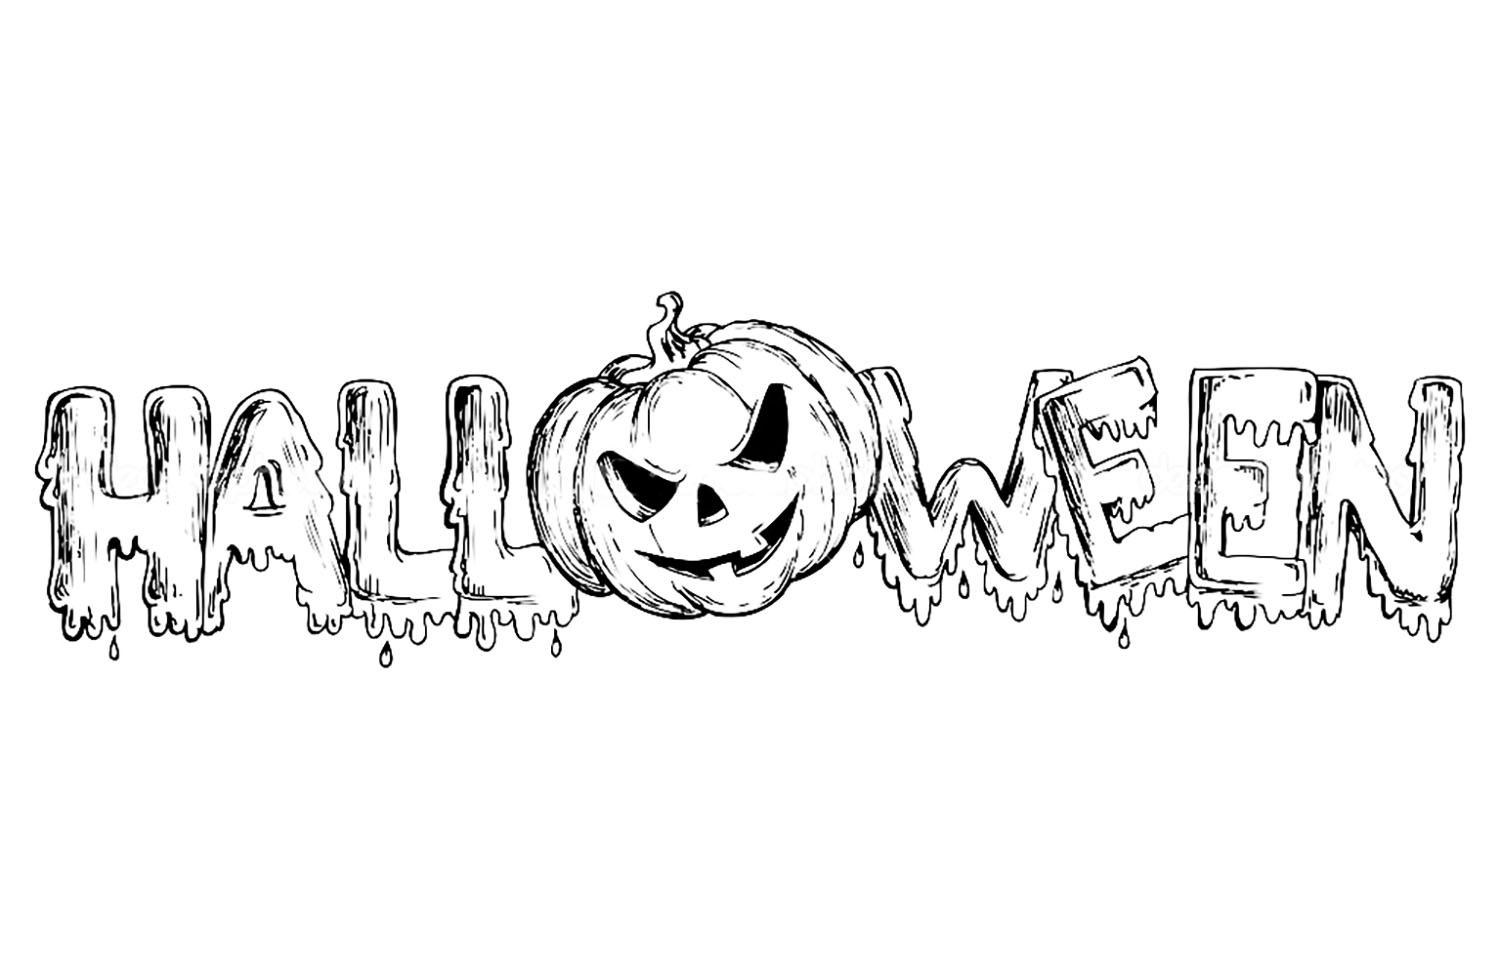 C'est Halloween ! Un coloriage simple | A partir de la galerie : Halloween